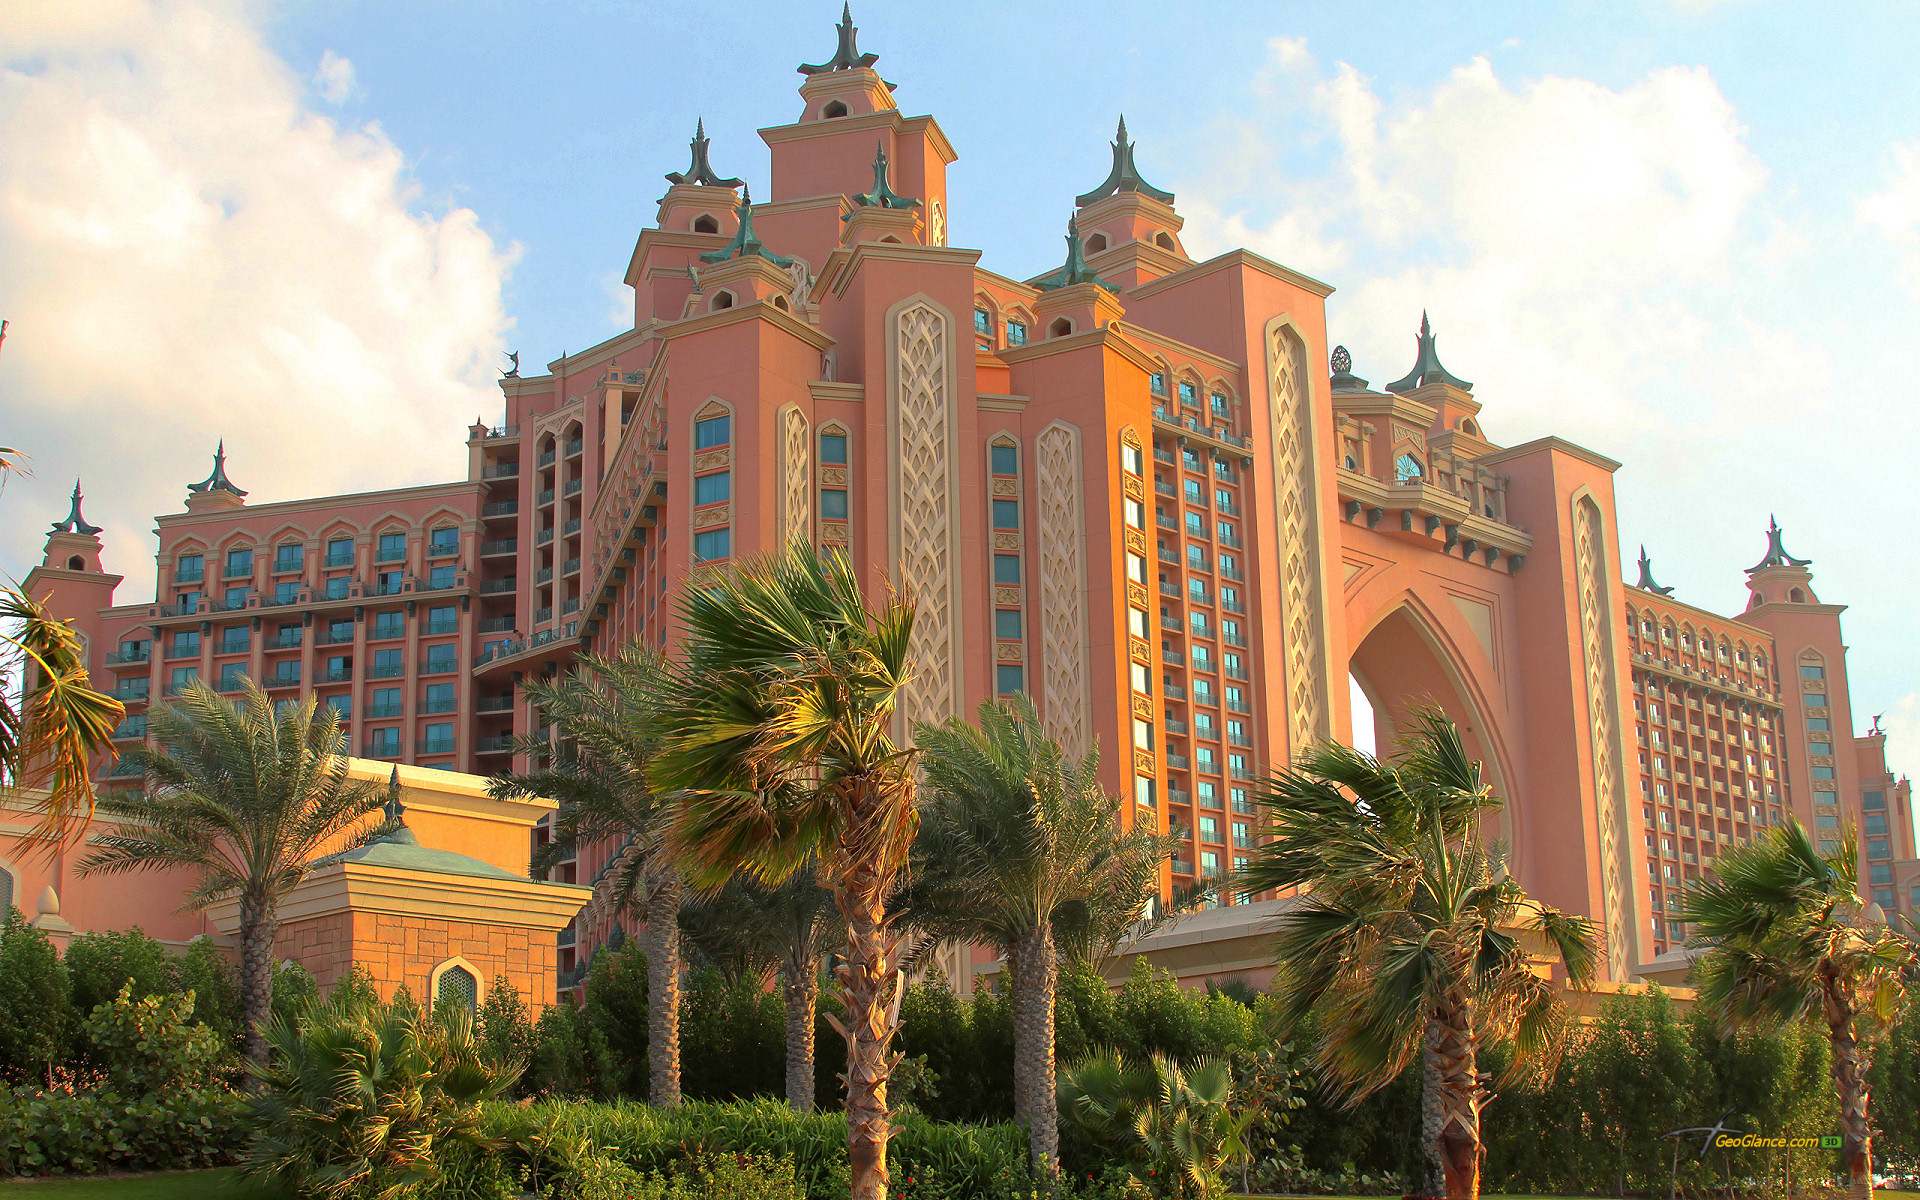 2 atlantis hotel dubai hd wallpaper